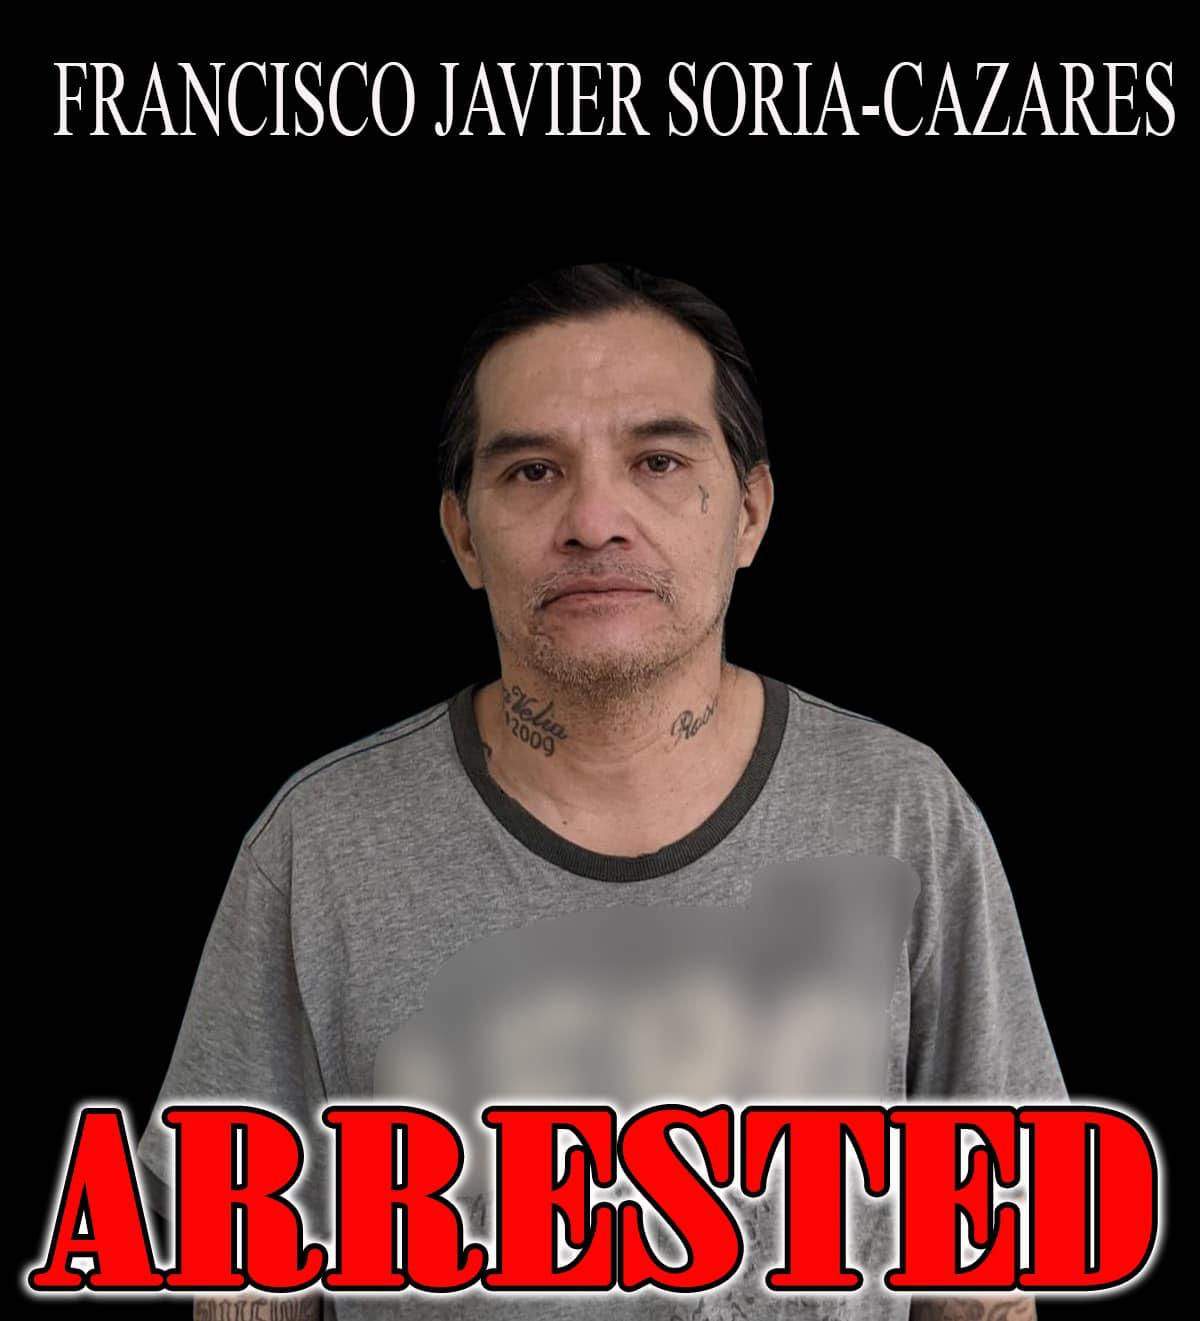 Sex offenders arrested while entering the country illegally